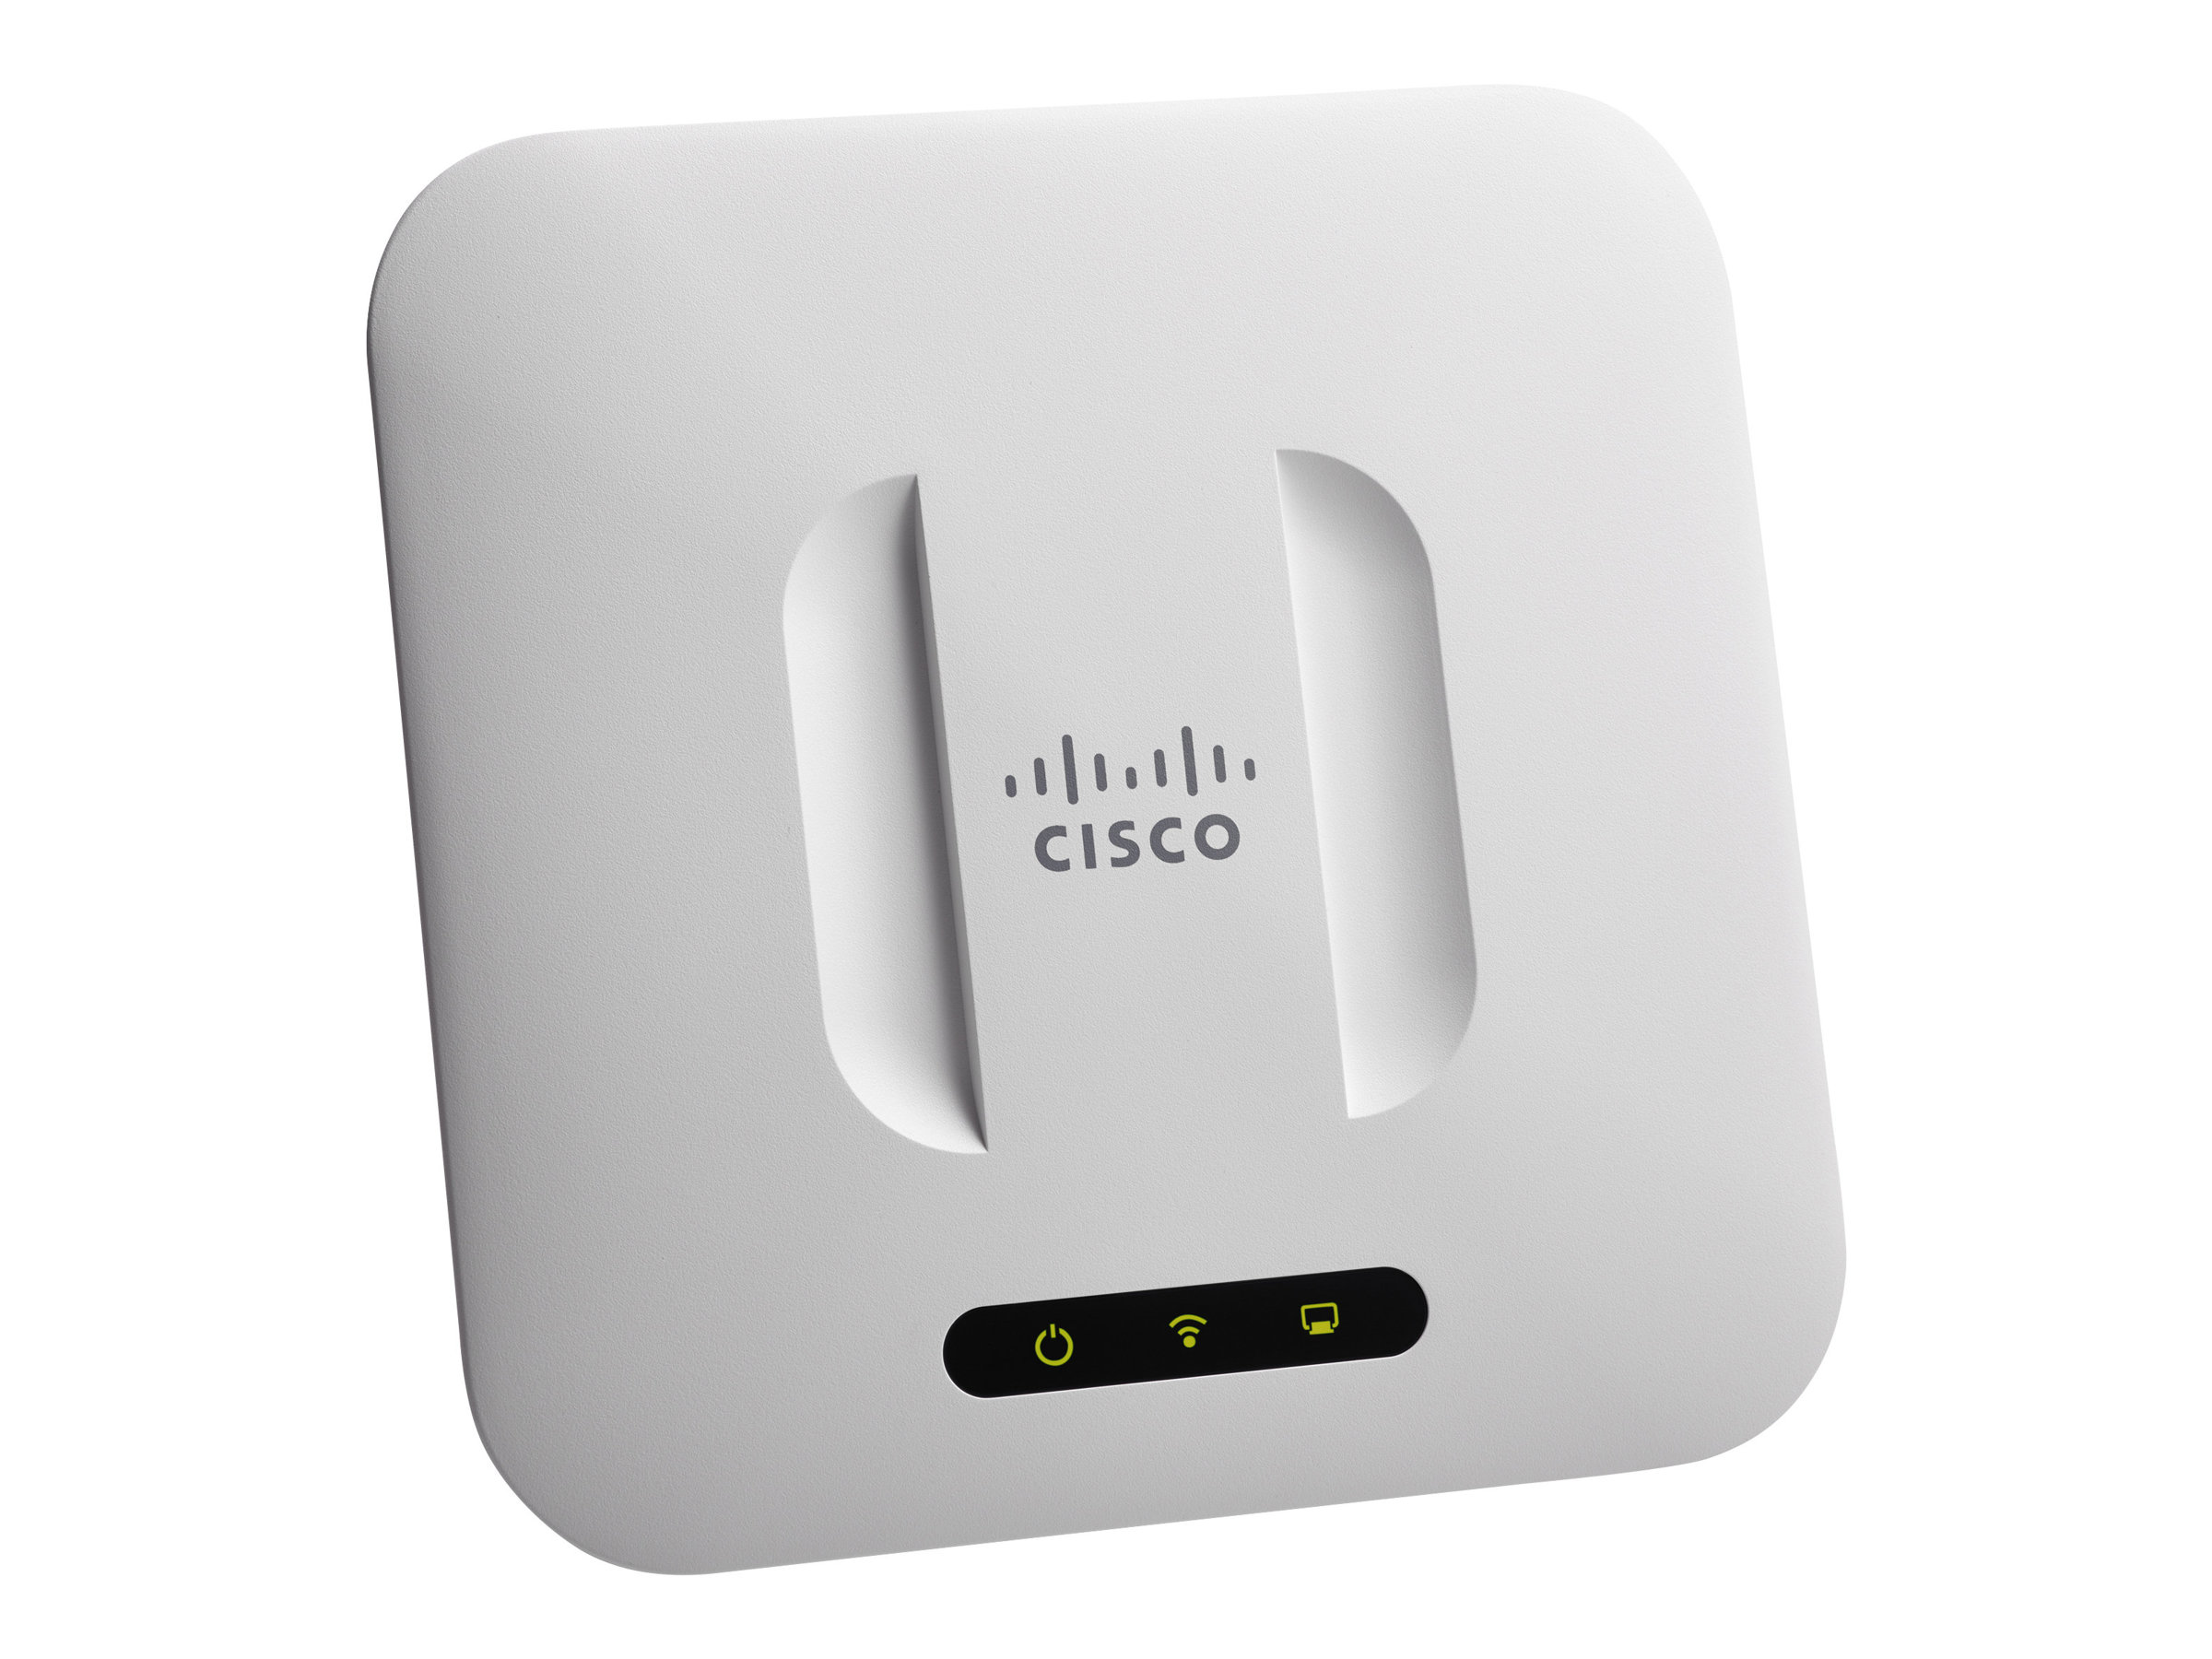 Cisco Small Business WAP371 - Drahtlose Basisstation - Wi-Fi - Dualband